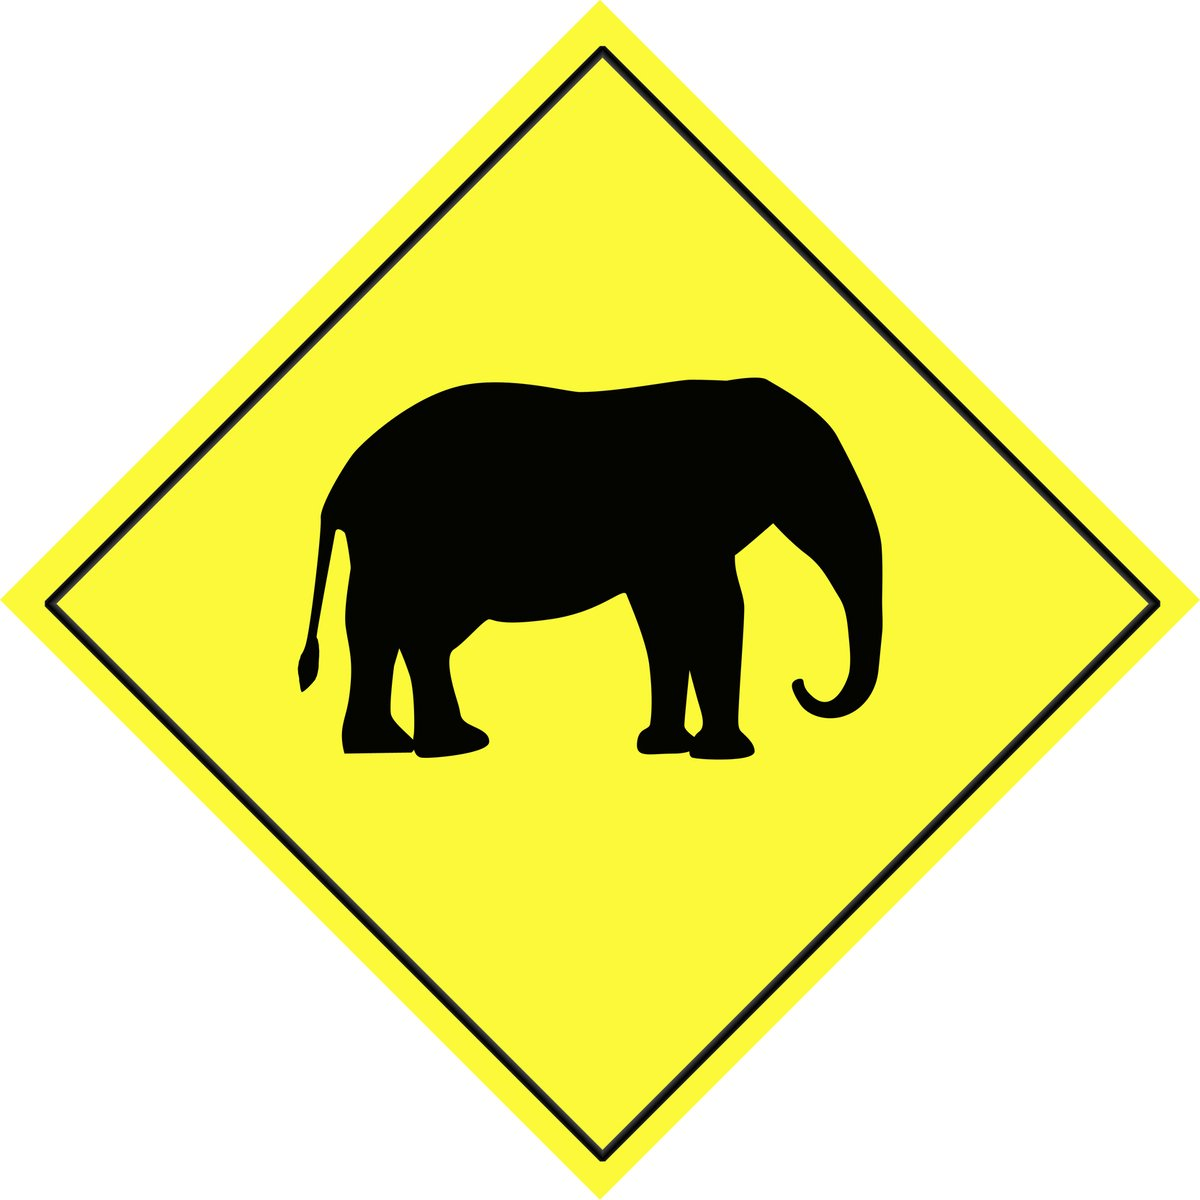 warning animal sign elephant danger shape road international wild yellow elephants square freeimages nature shooting street rgbstock